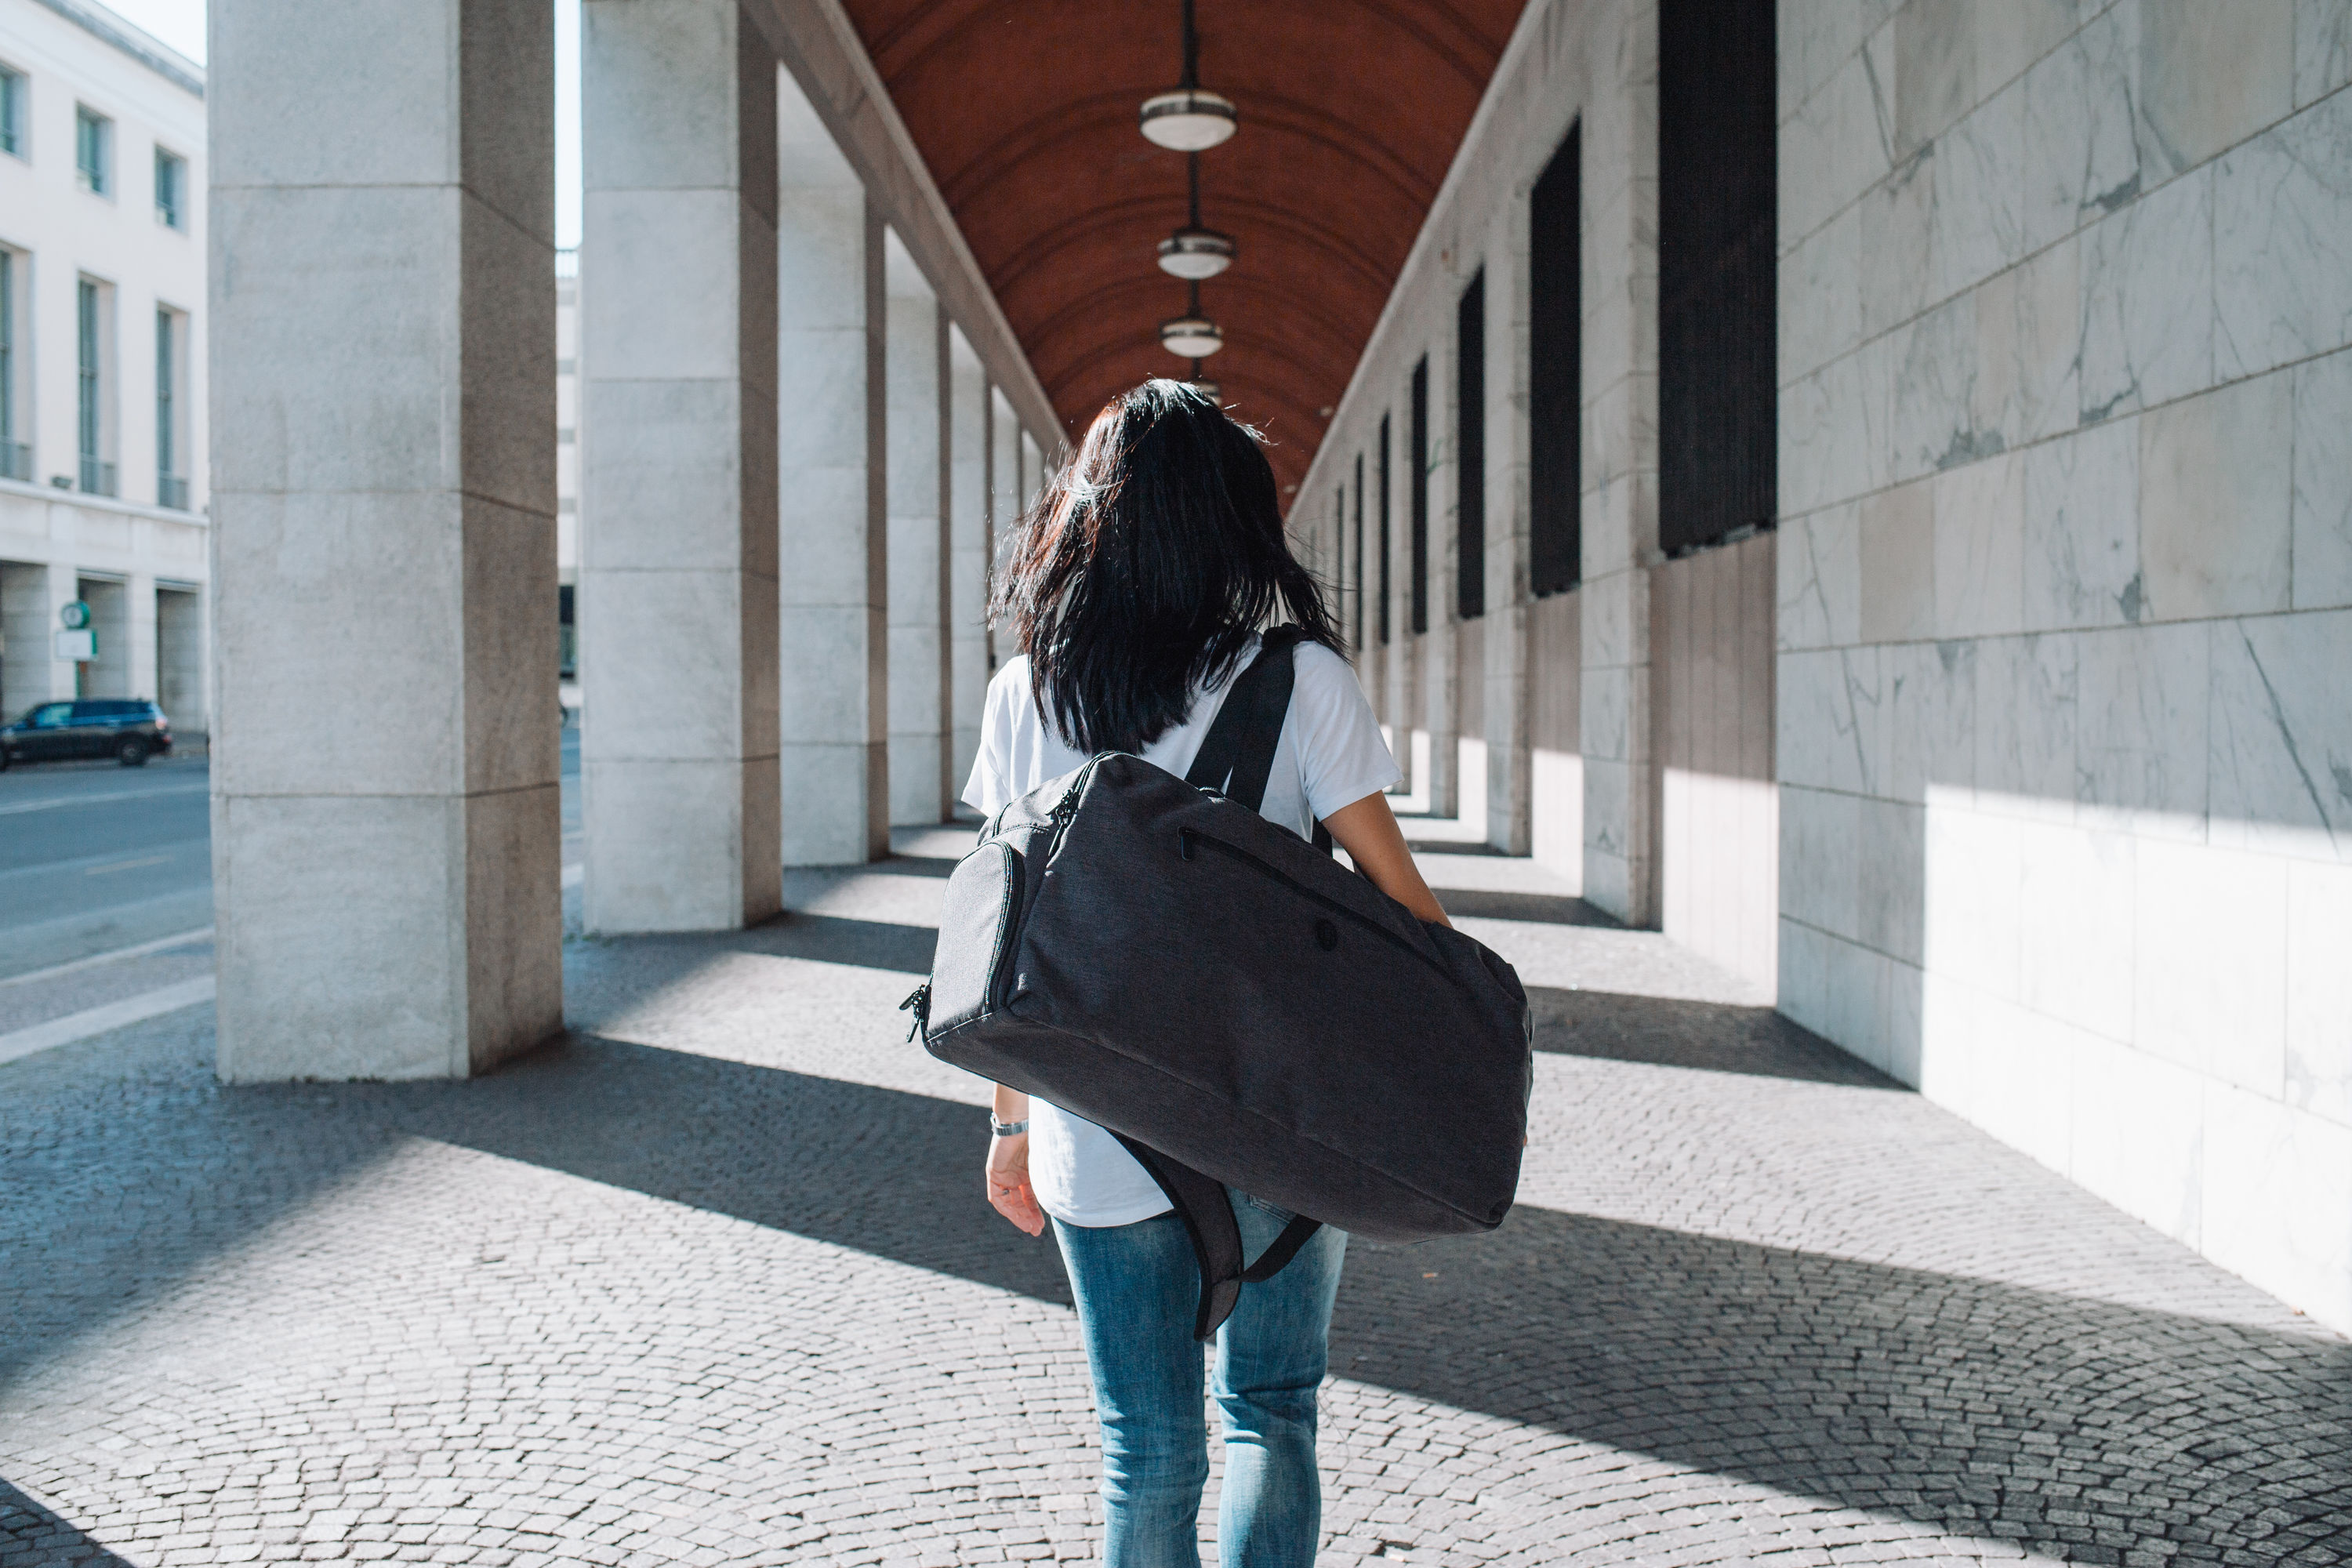 A woman carries a duffle bag in a portico.